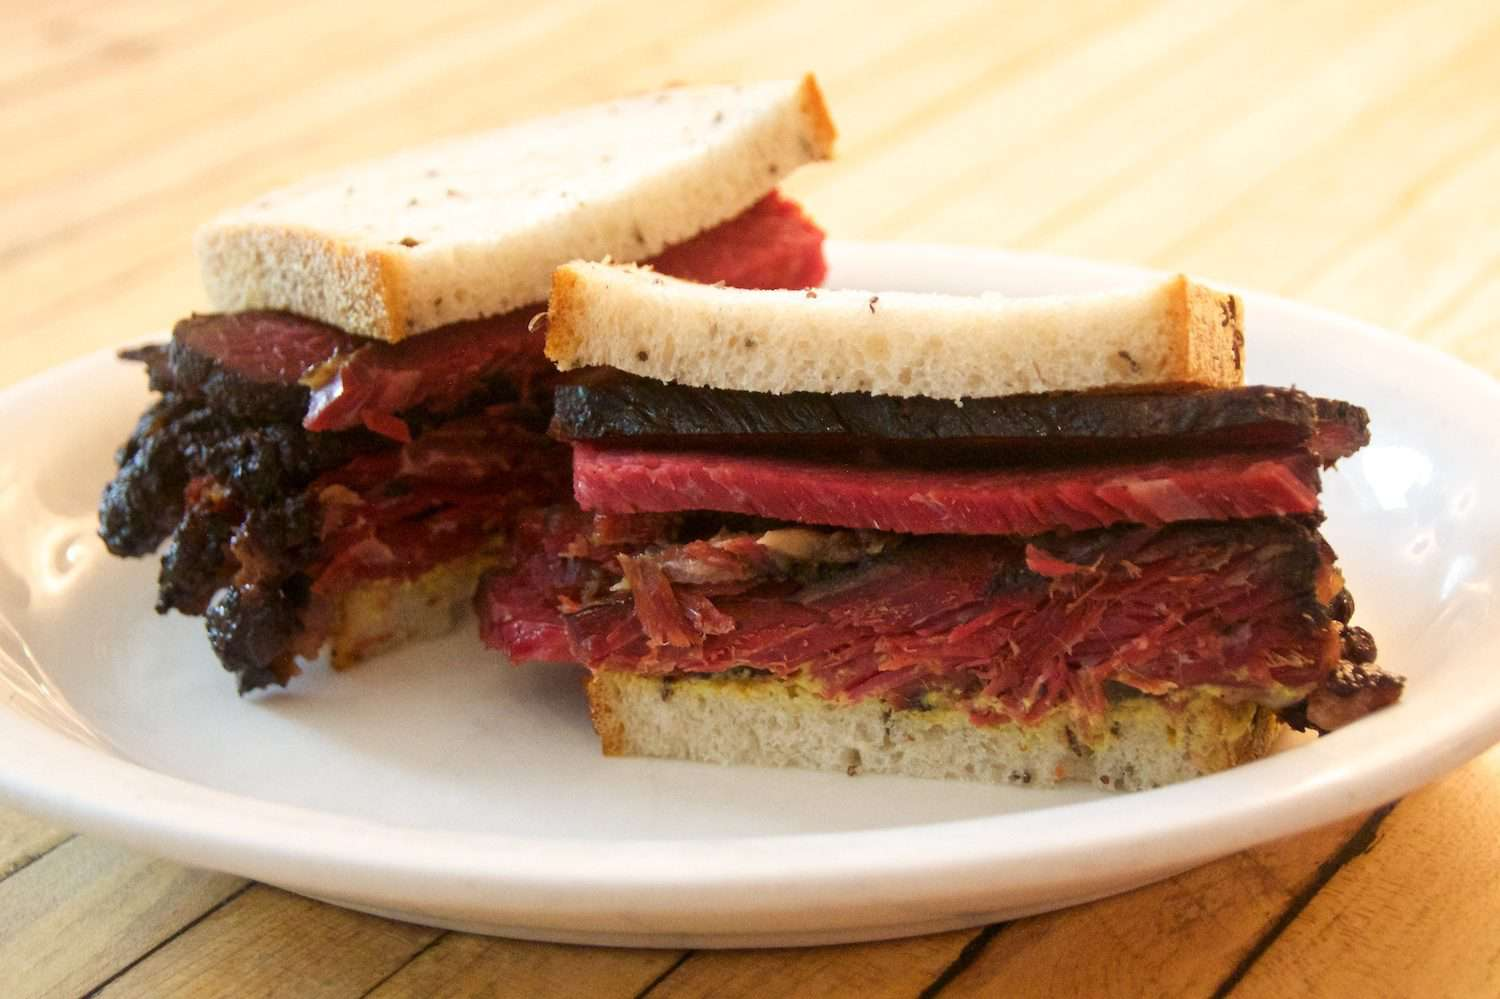 Pastrami sandwich on white serving plate.